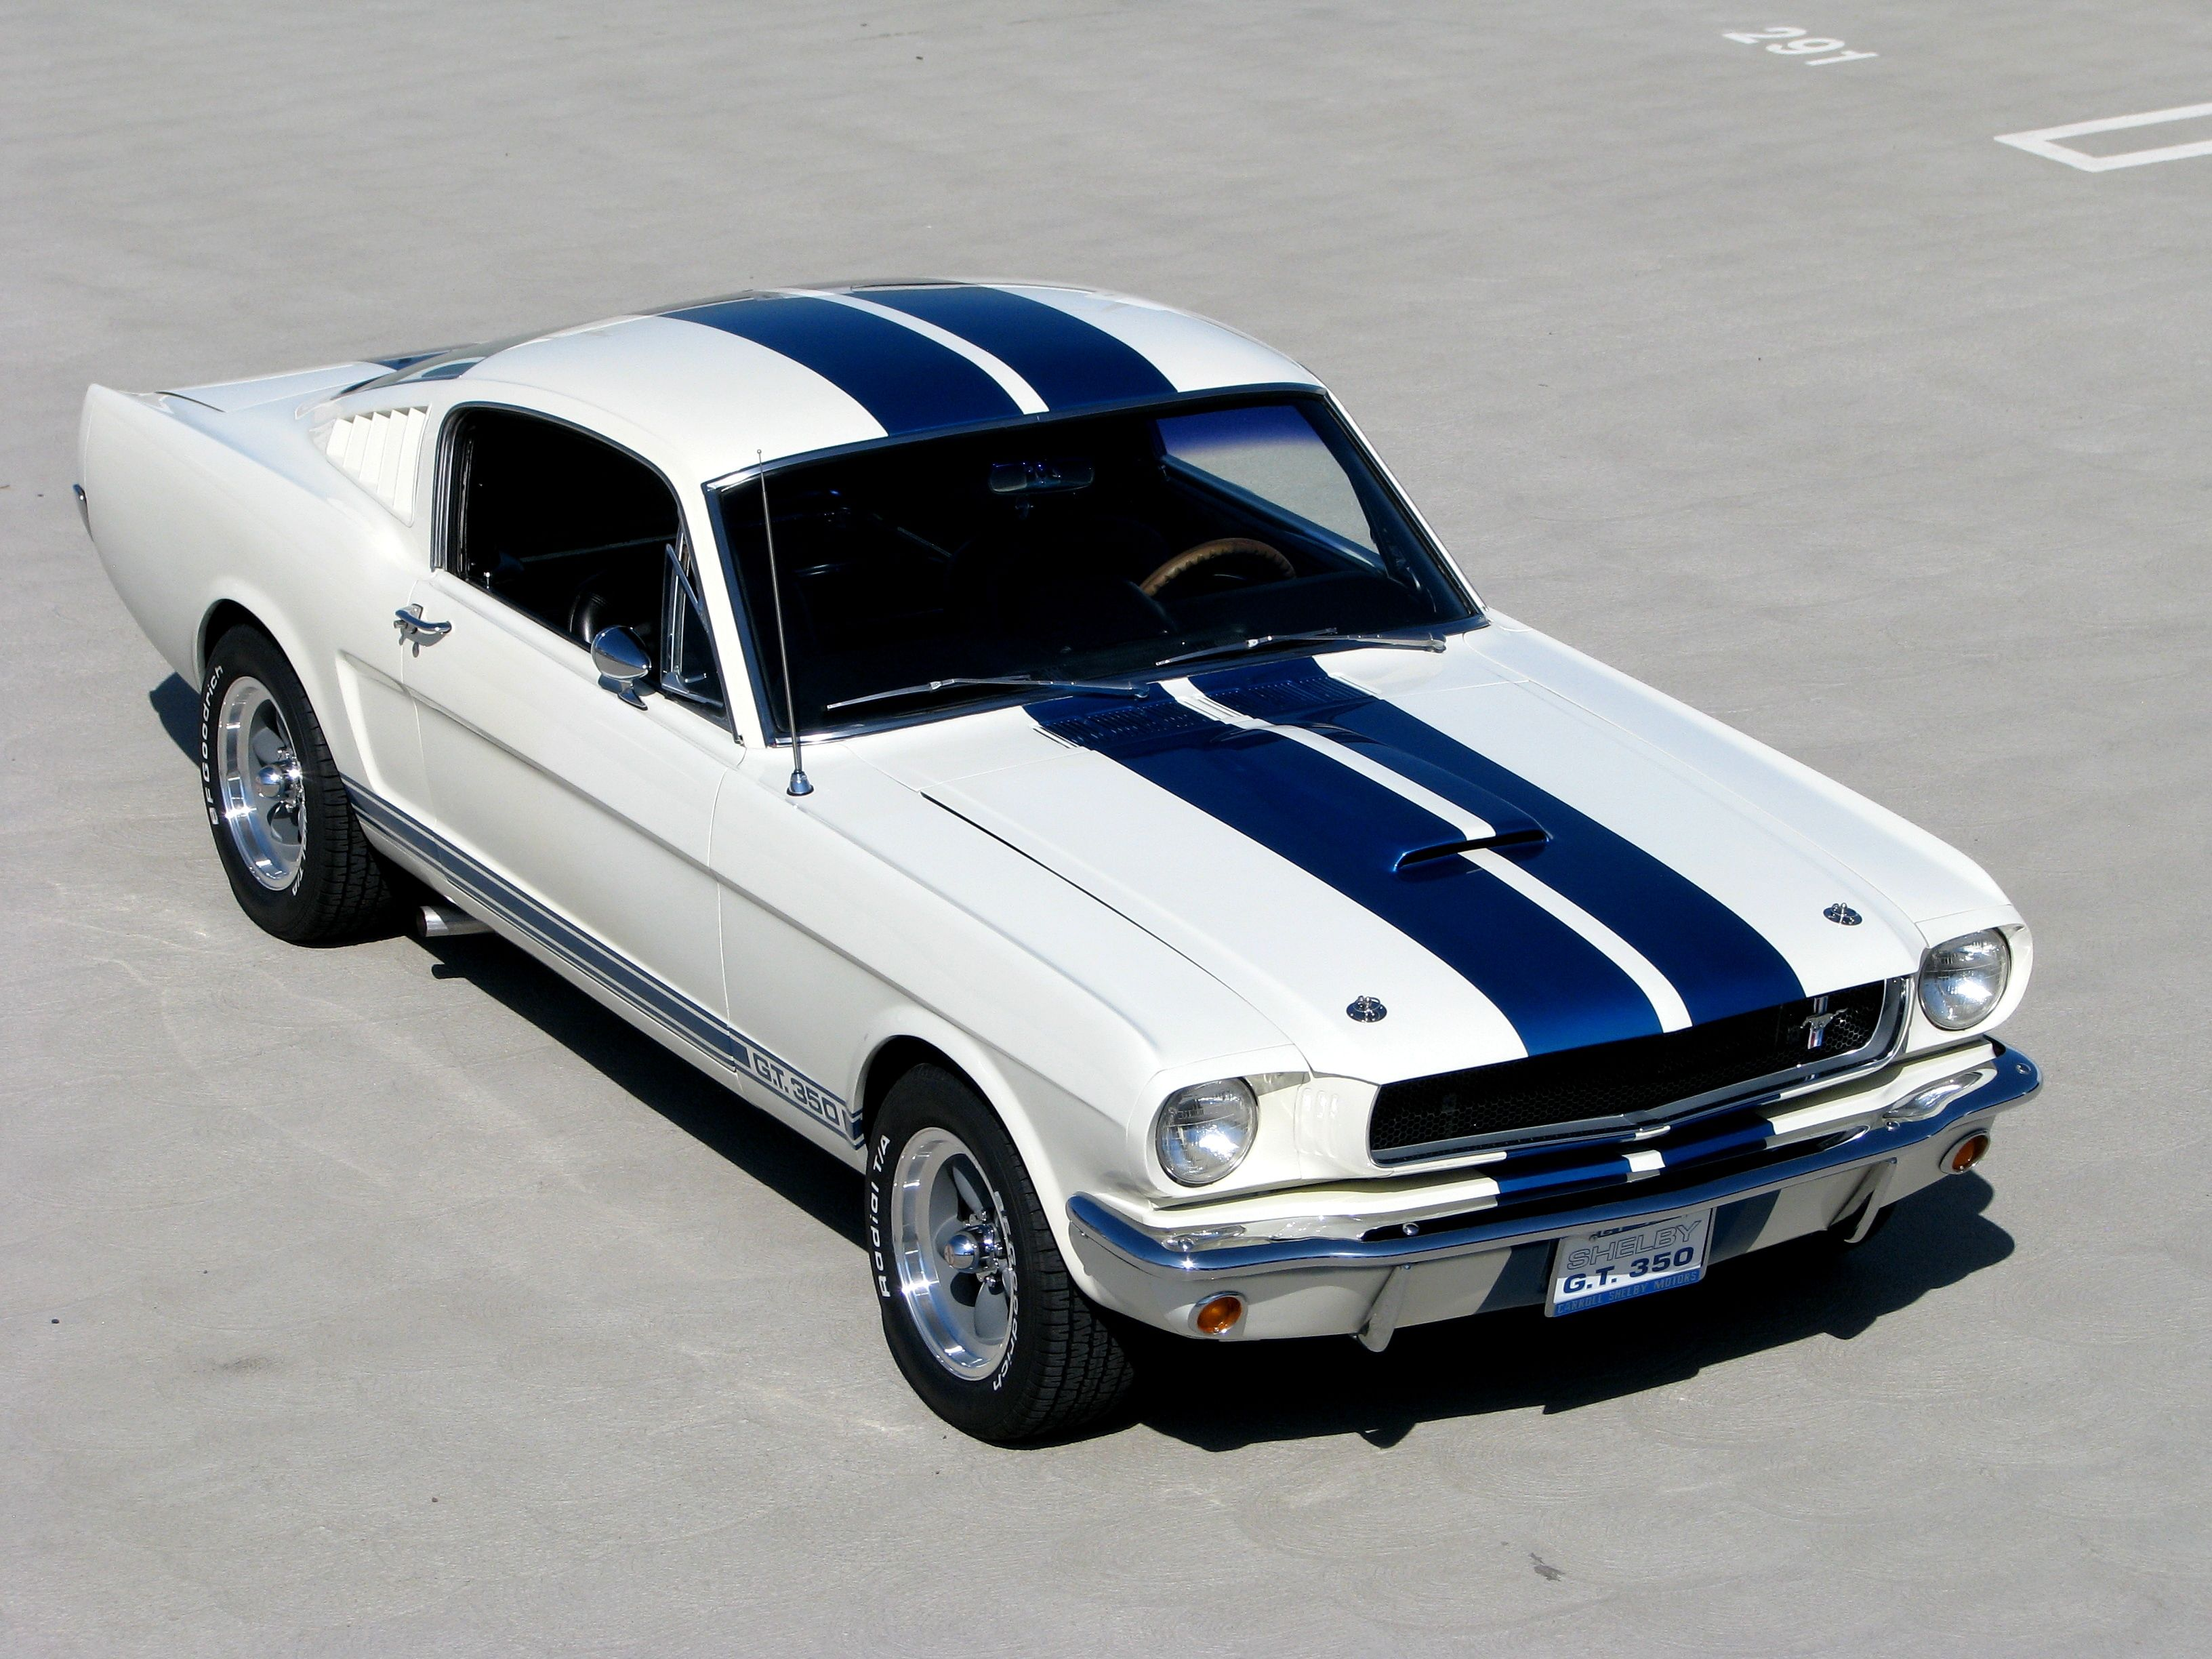 65 mustang white with blue stripes dresses